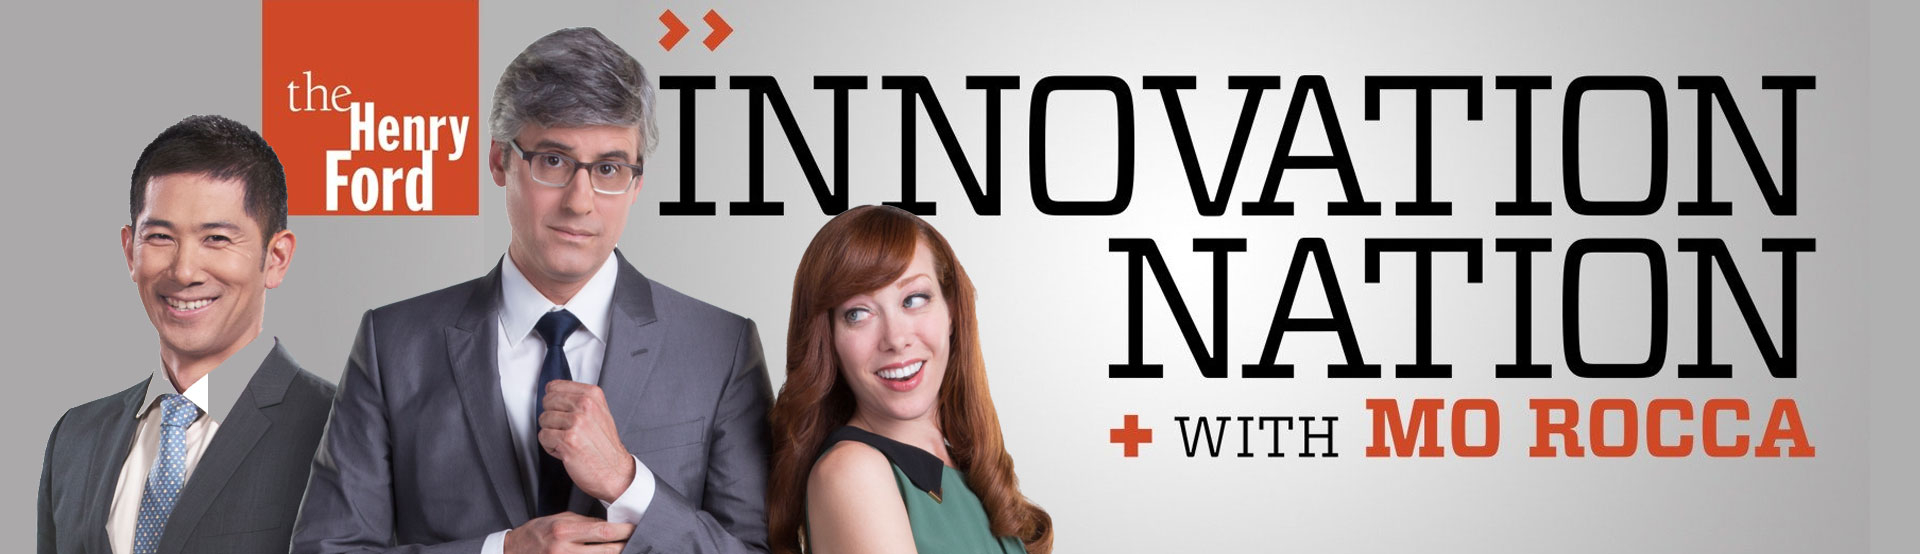 Banner image for The Henry Ford Innovation Nation With Mo Rocca